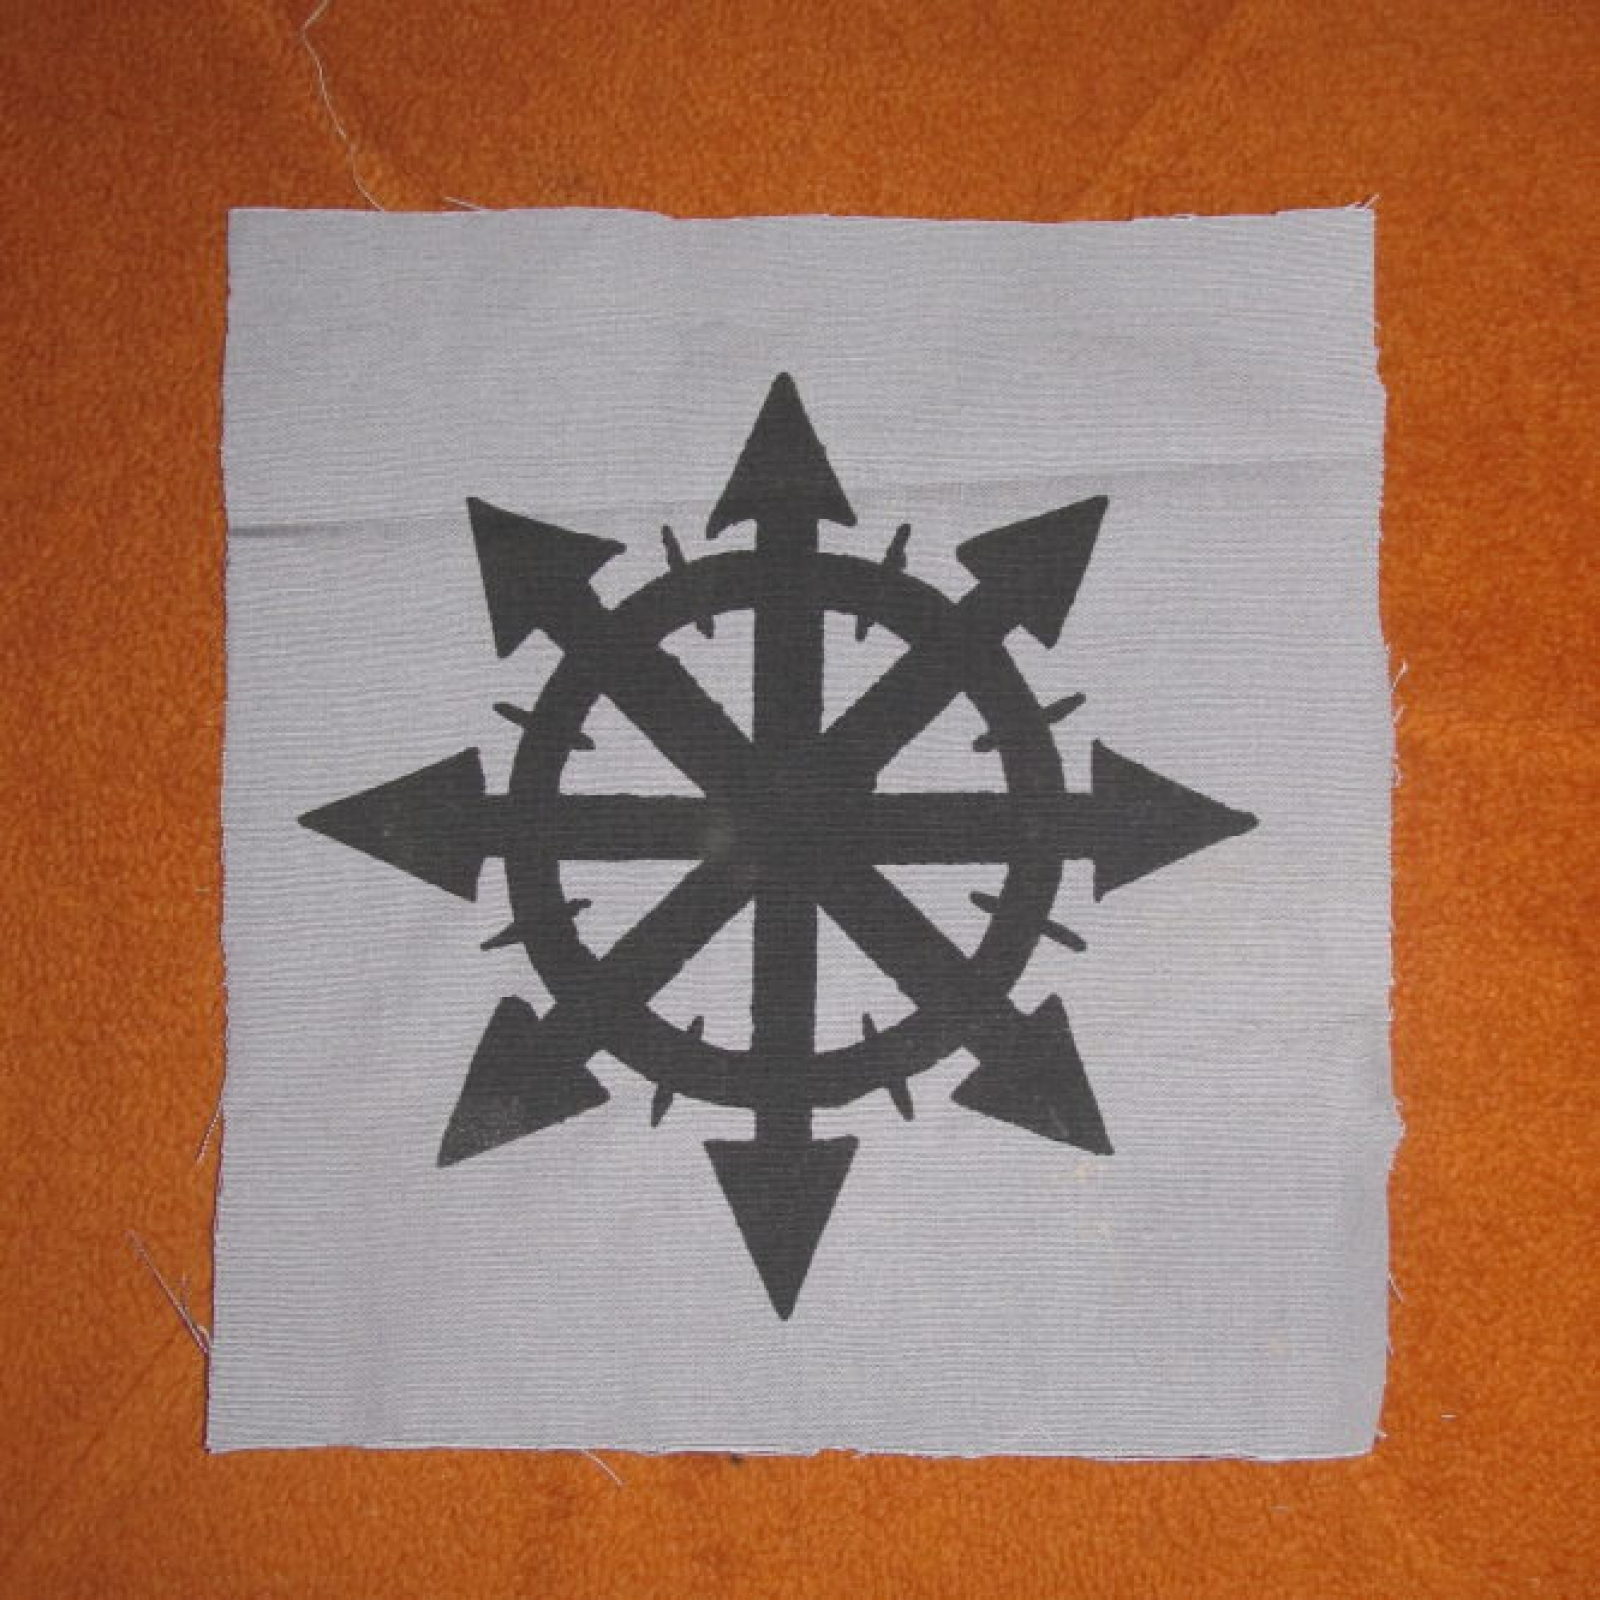 Chaos Back Patch Black Ink On Grey Canvas Large For Back Or Bag